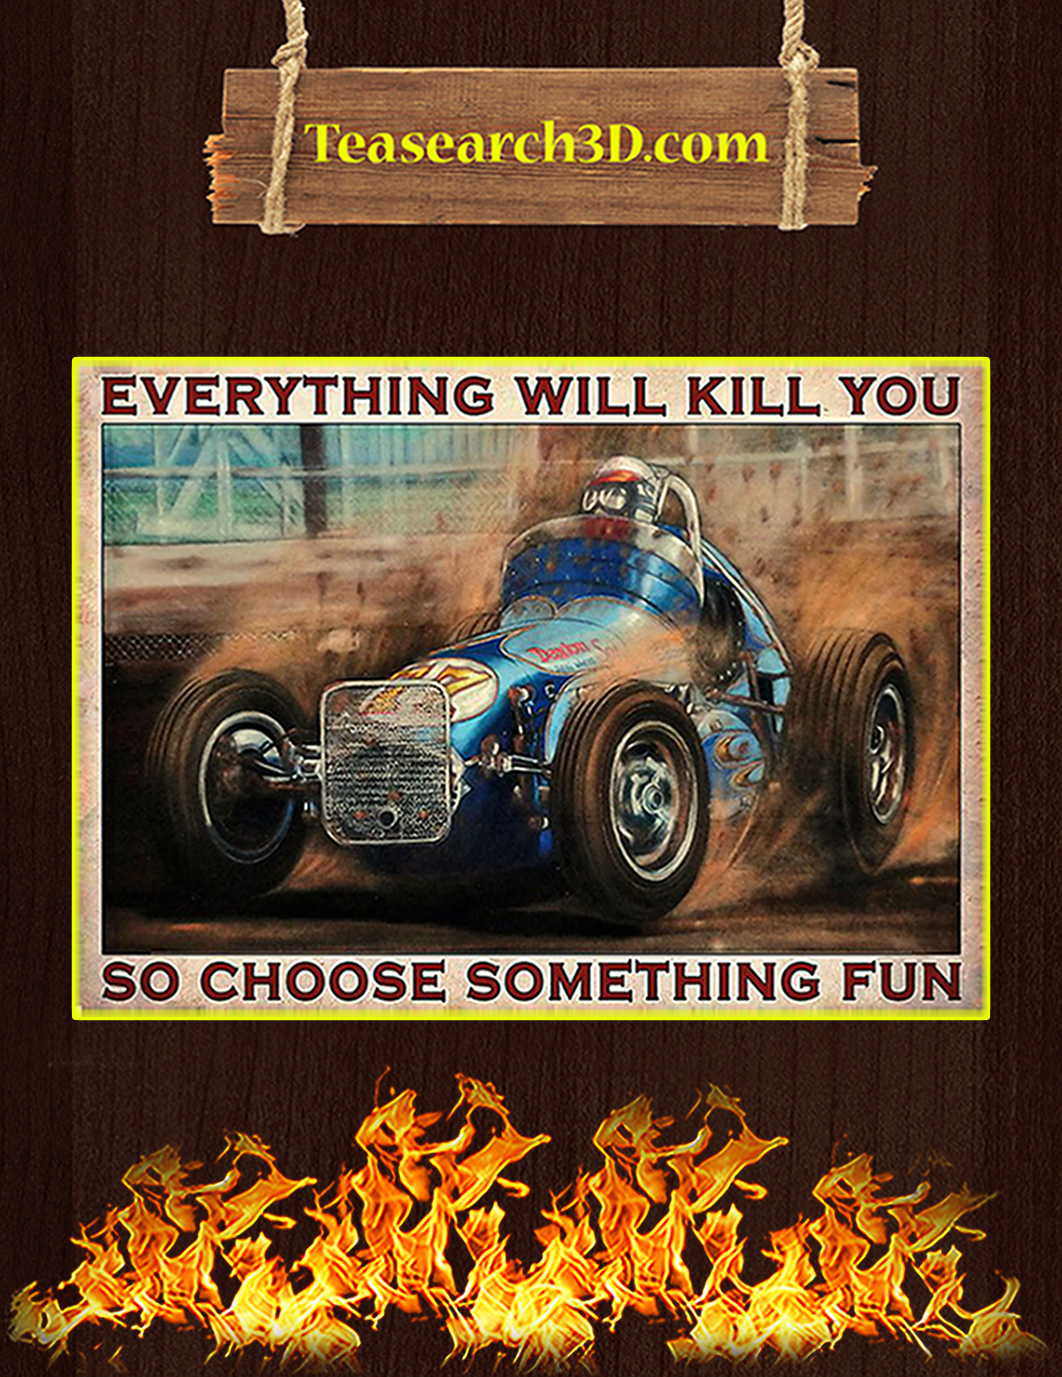 Dirt track racing everything will kill you so choose something fun poster A1